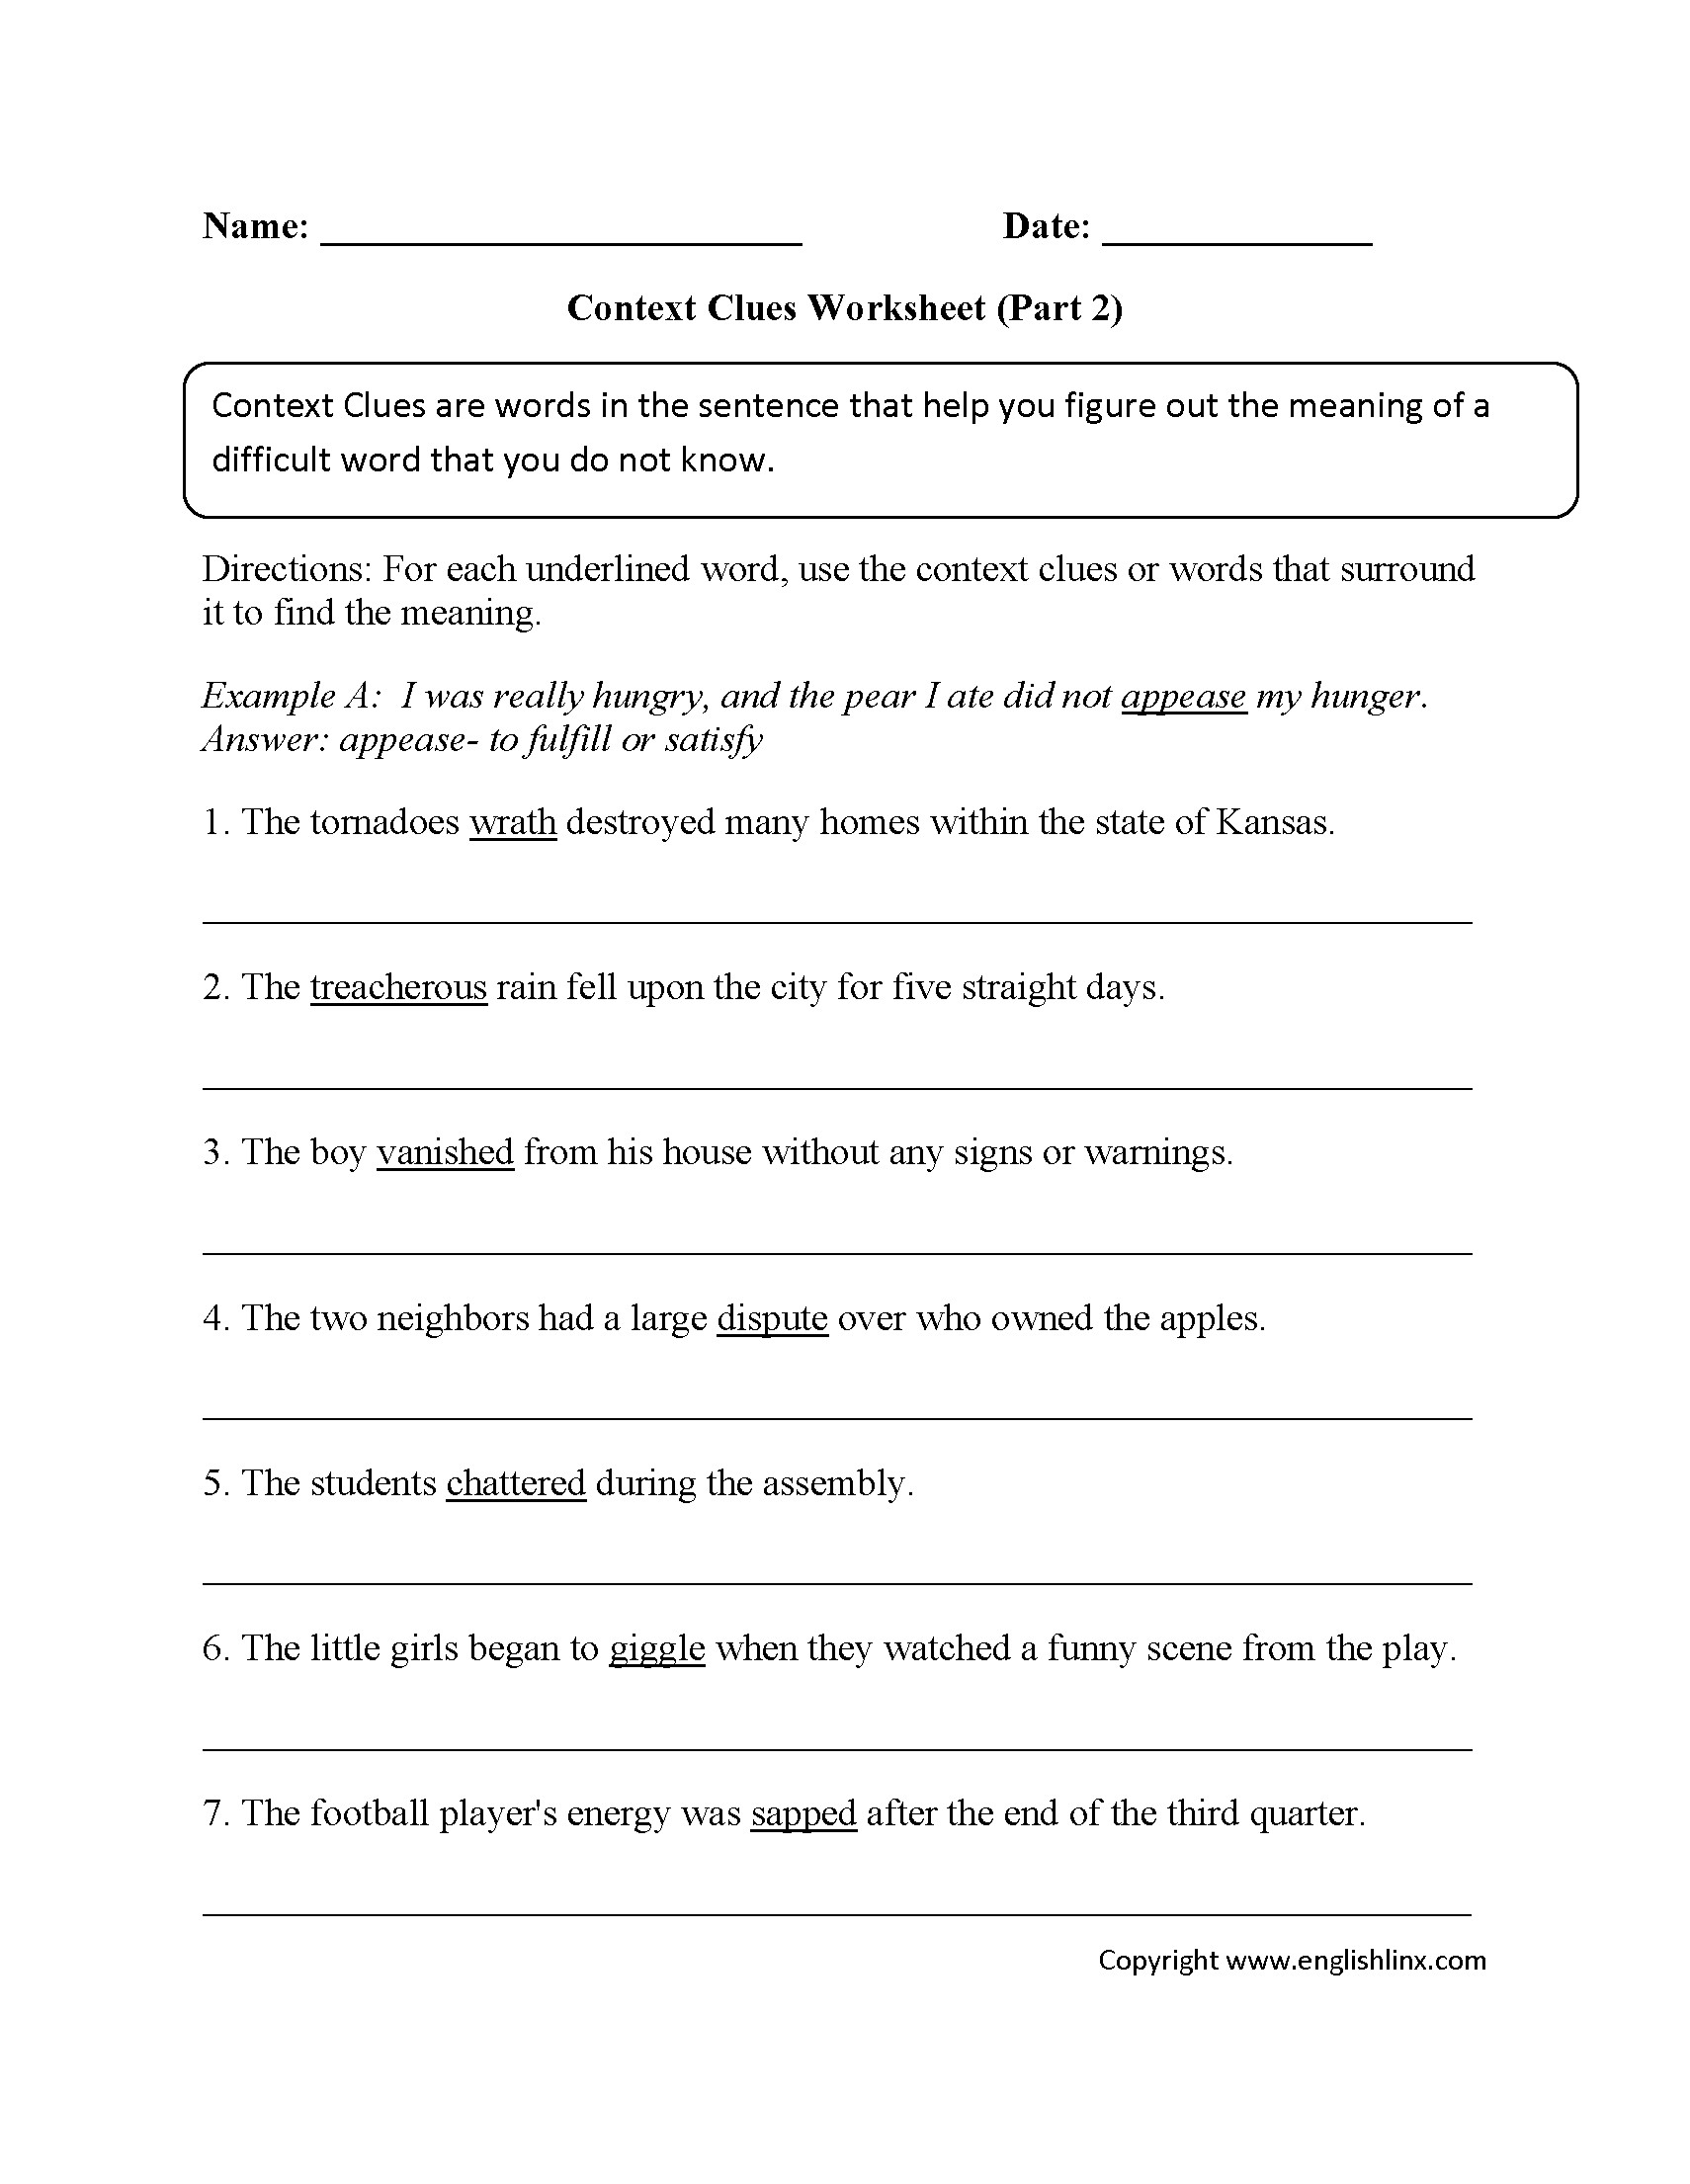 Word Meaning In Context Worksheets 2nd Grade